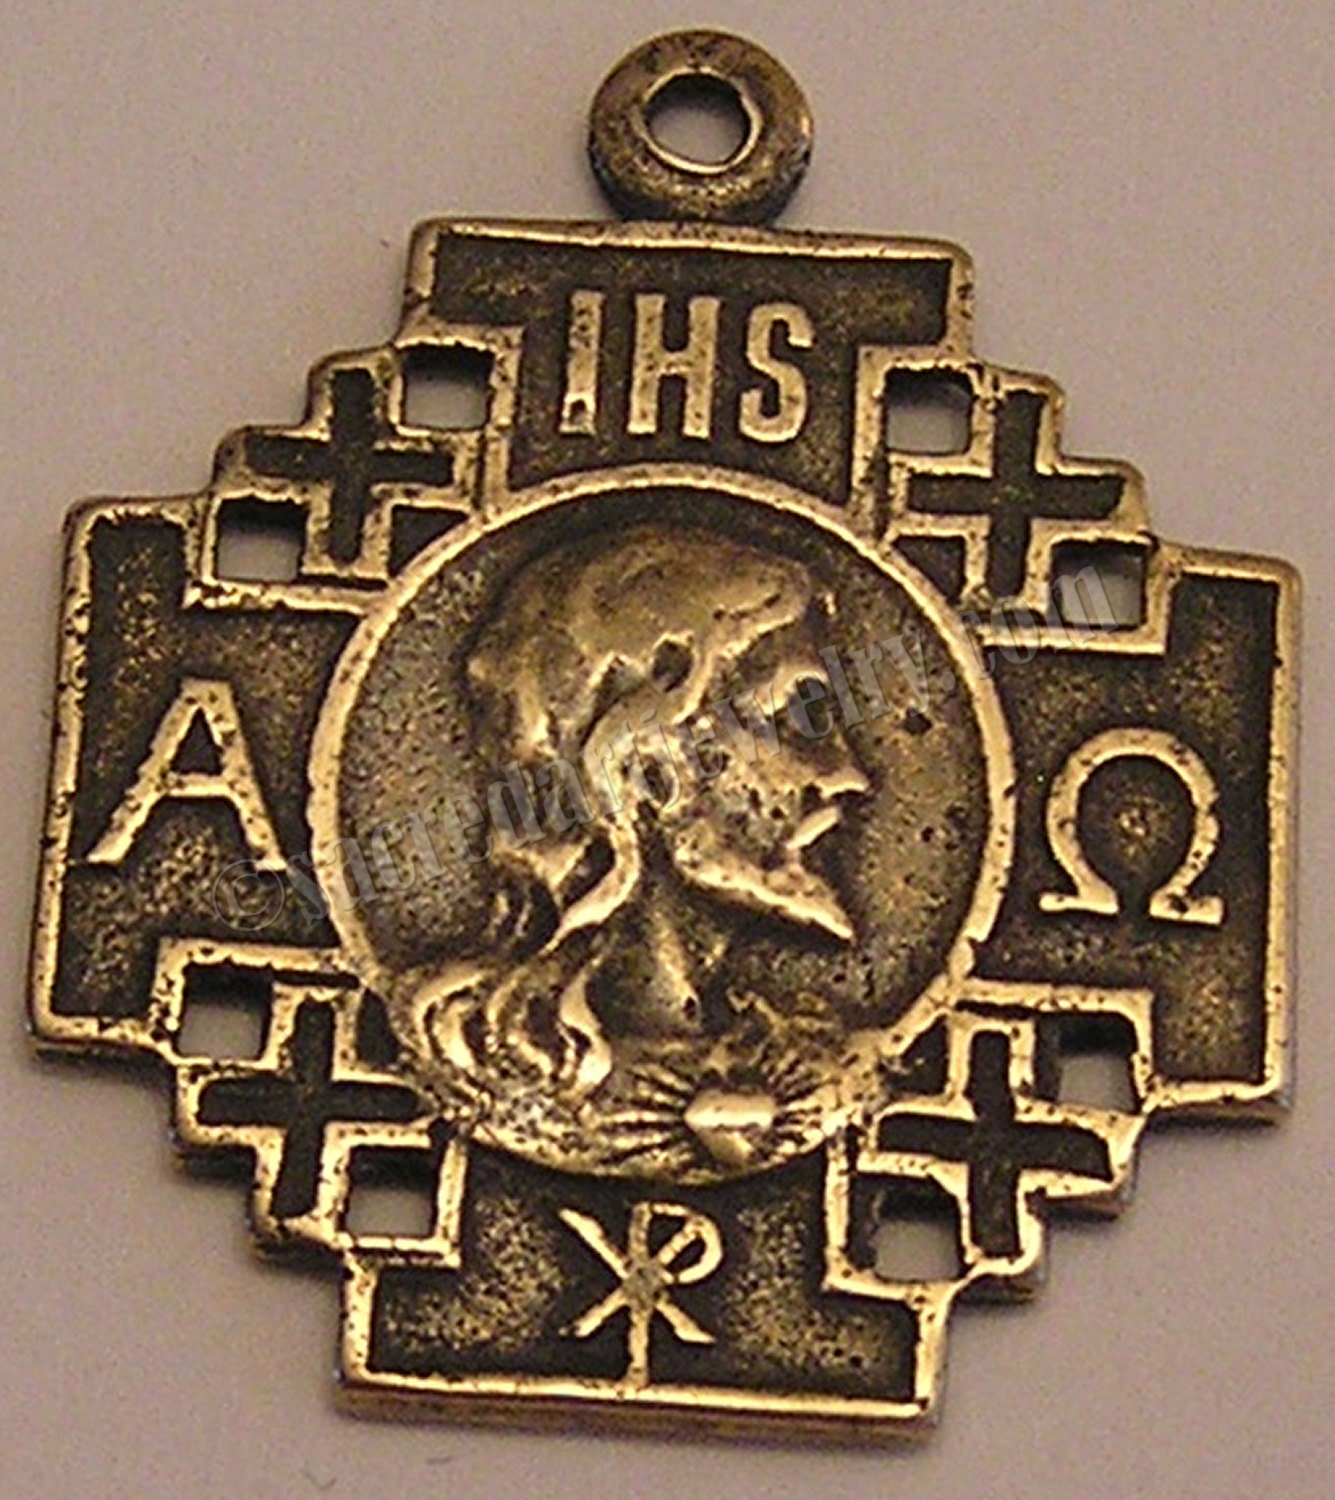 catholic christopher protect product open st sadco us medallion